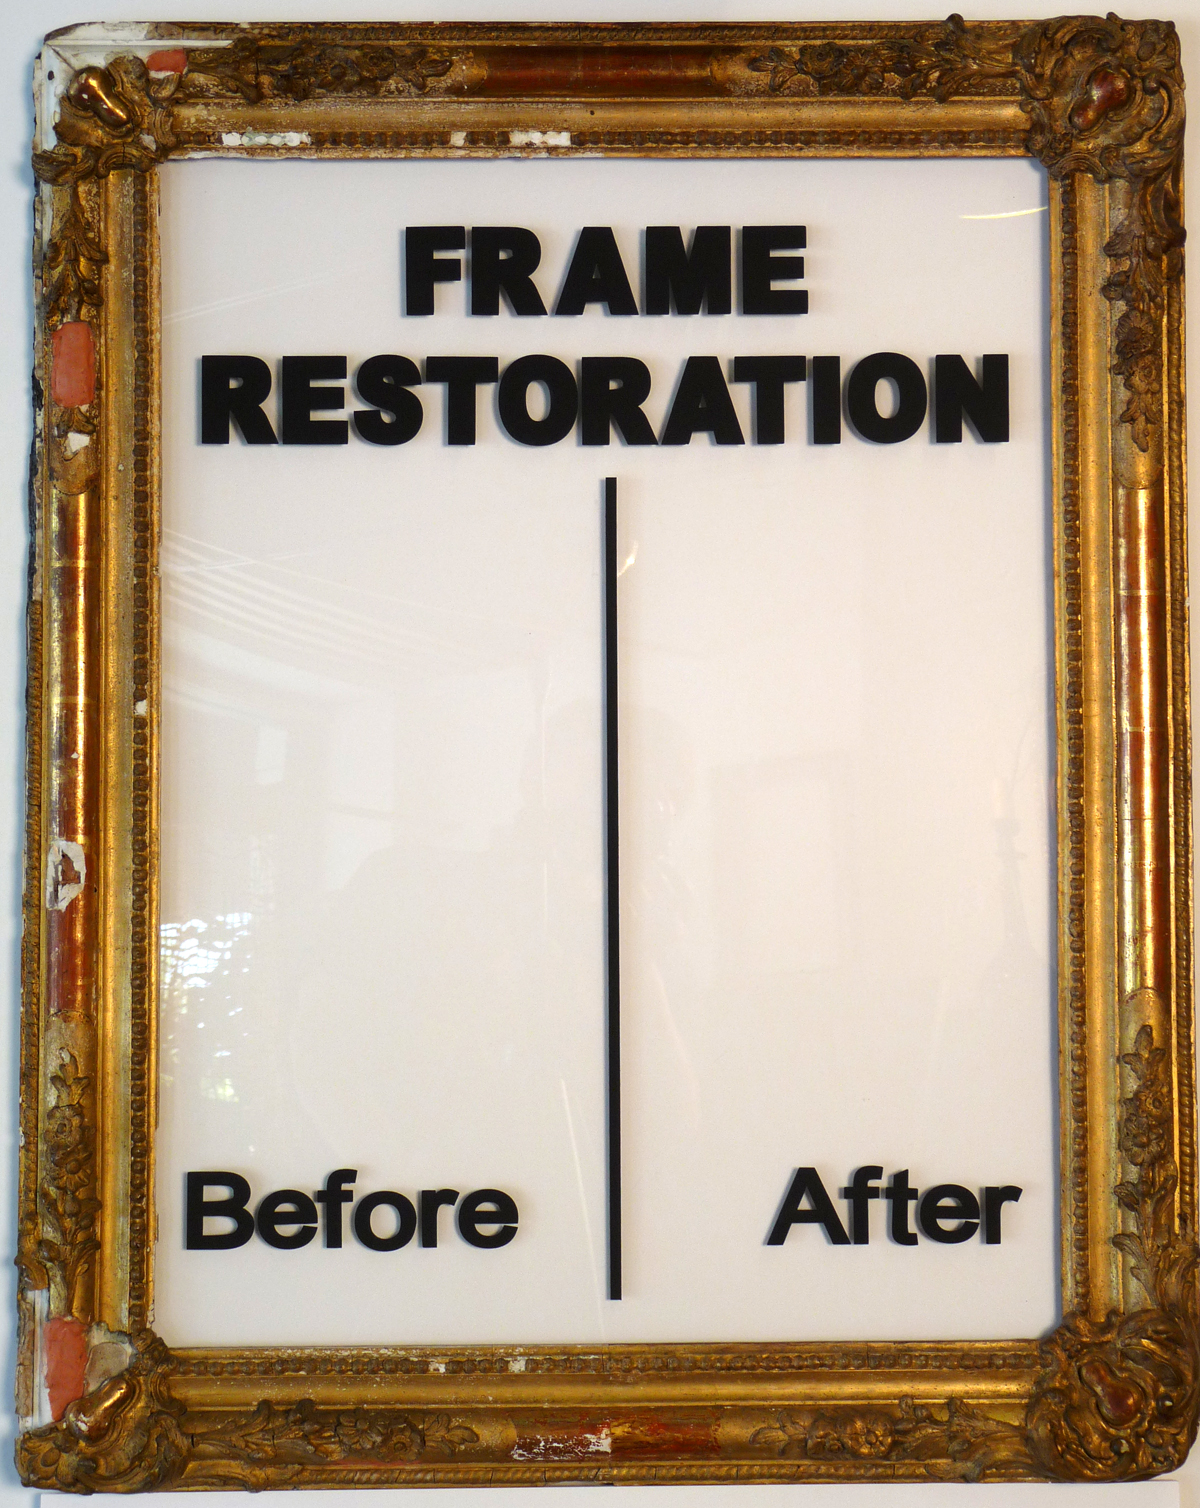 Frame restoration galleria scola custom framing antique jeuxipadfo Image collections